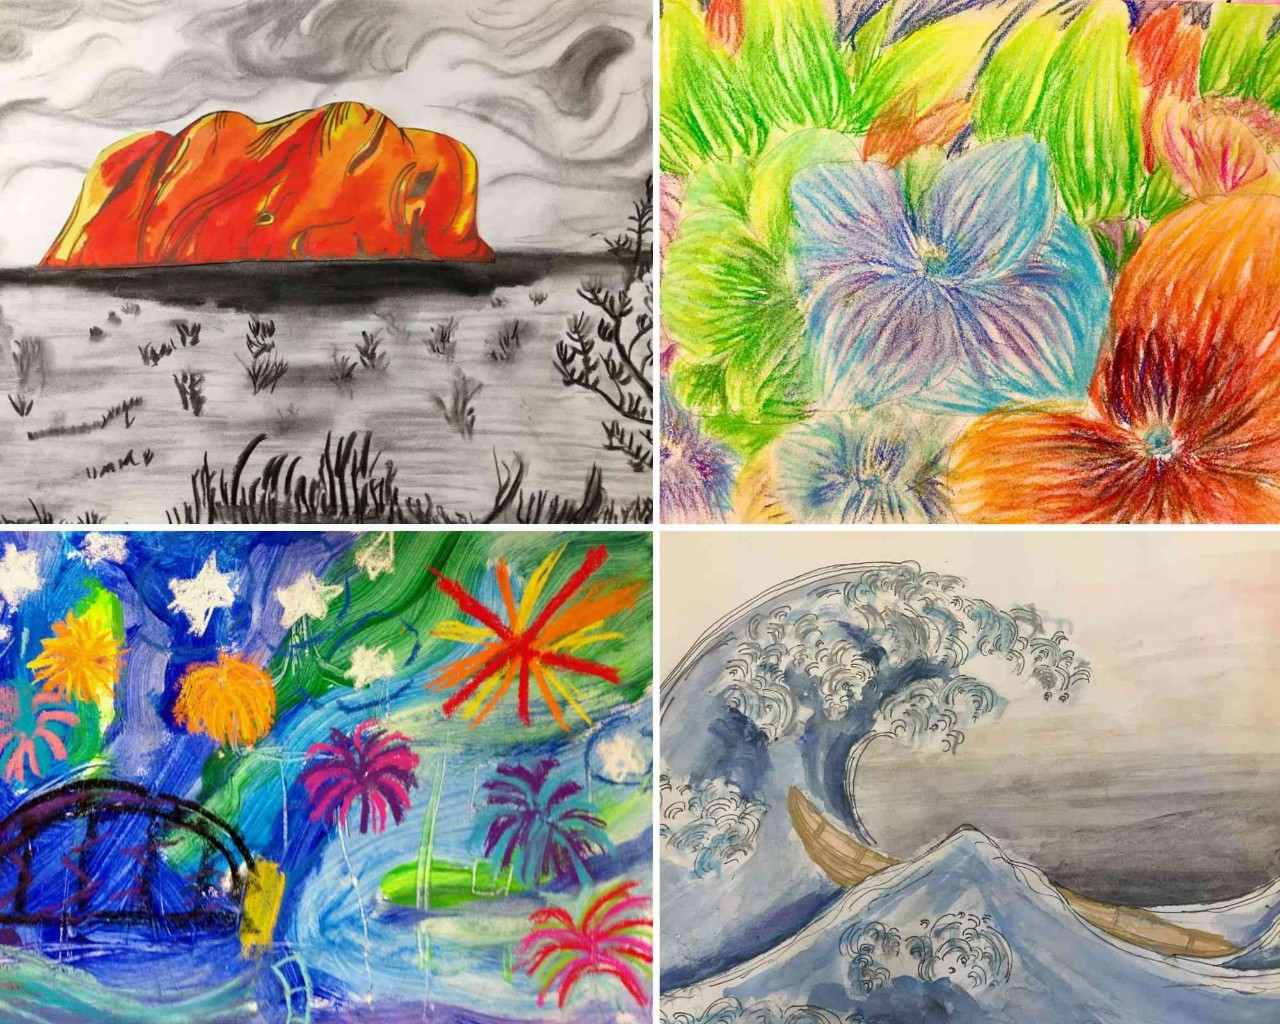 Collage of students artwork showing 4 paintings and drawings